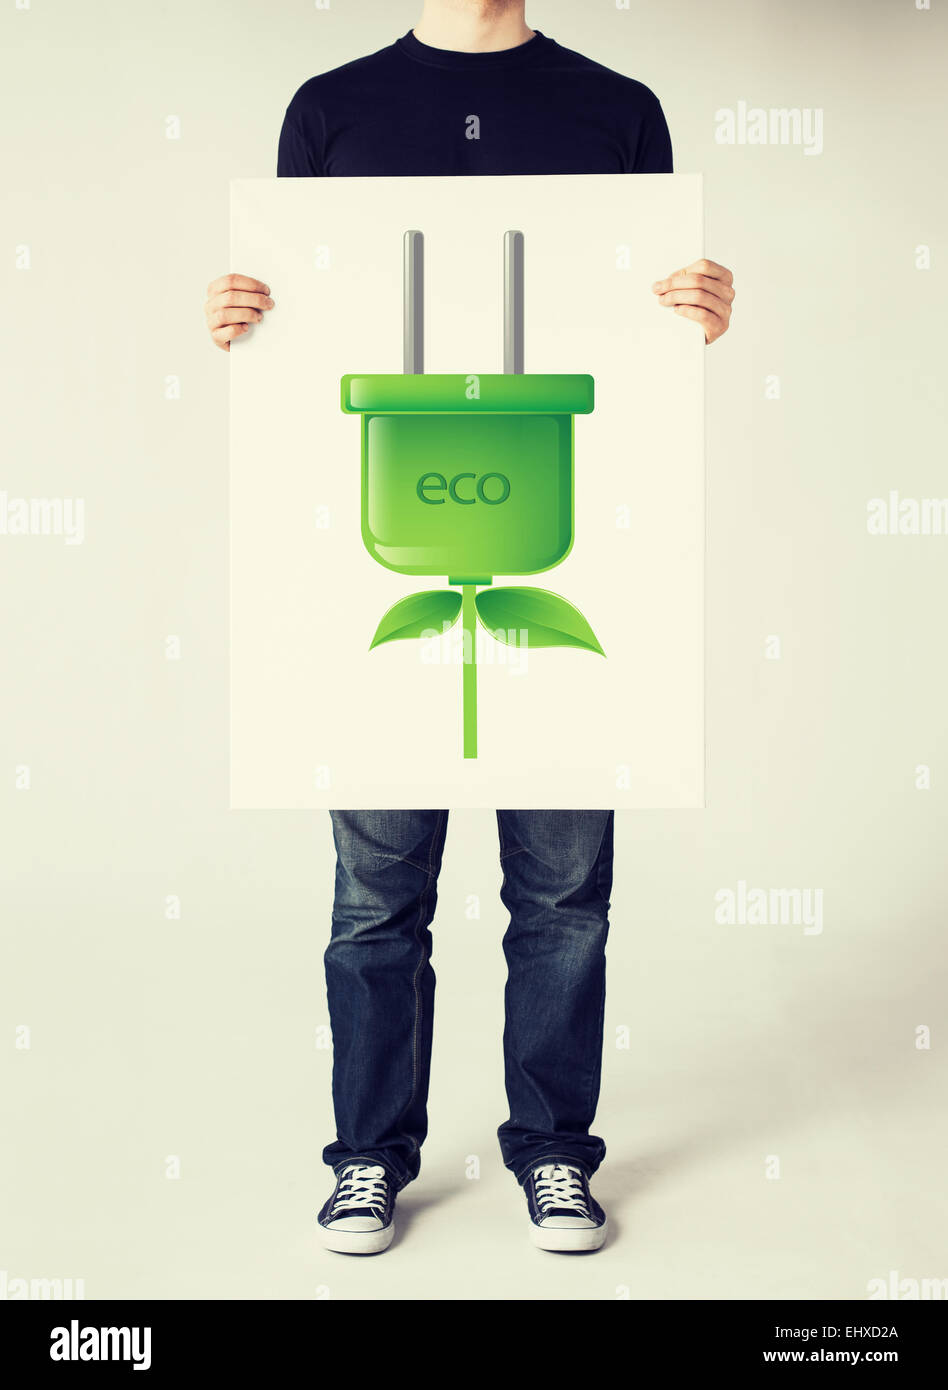 Mains avec la photo de green electrica ecol plug Photo Stock